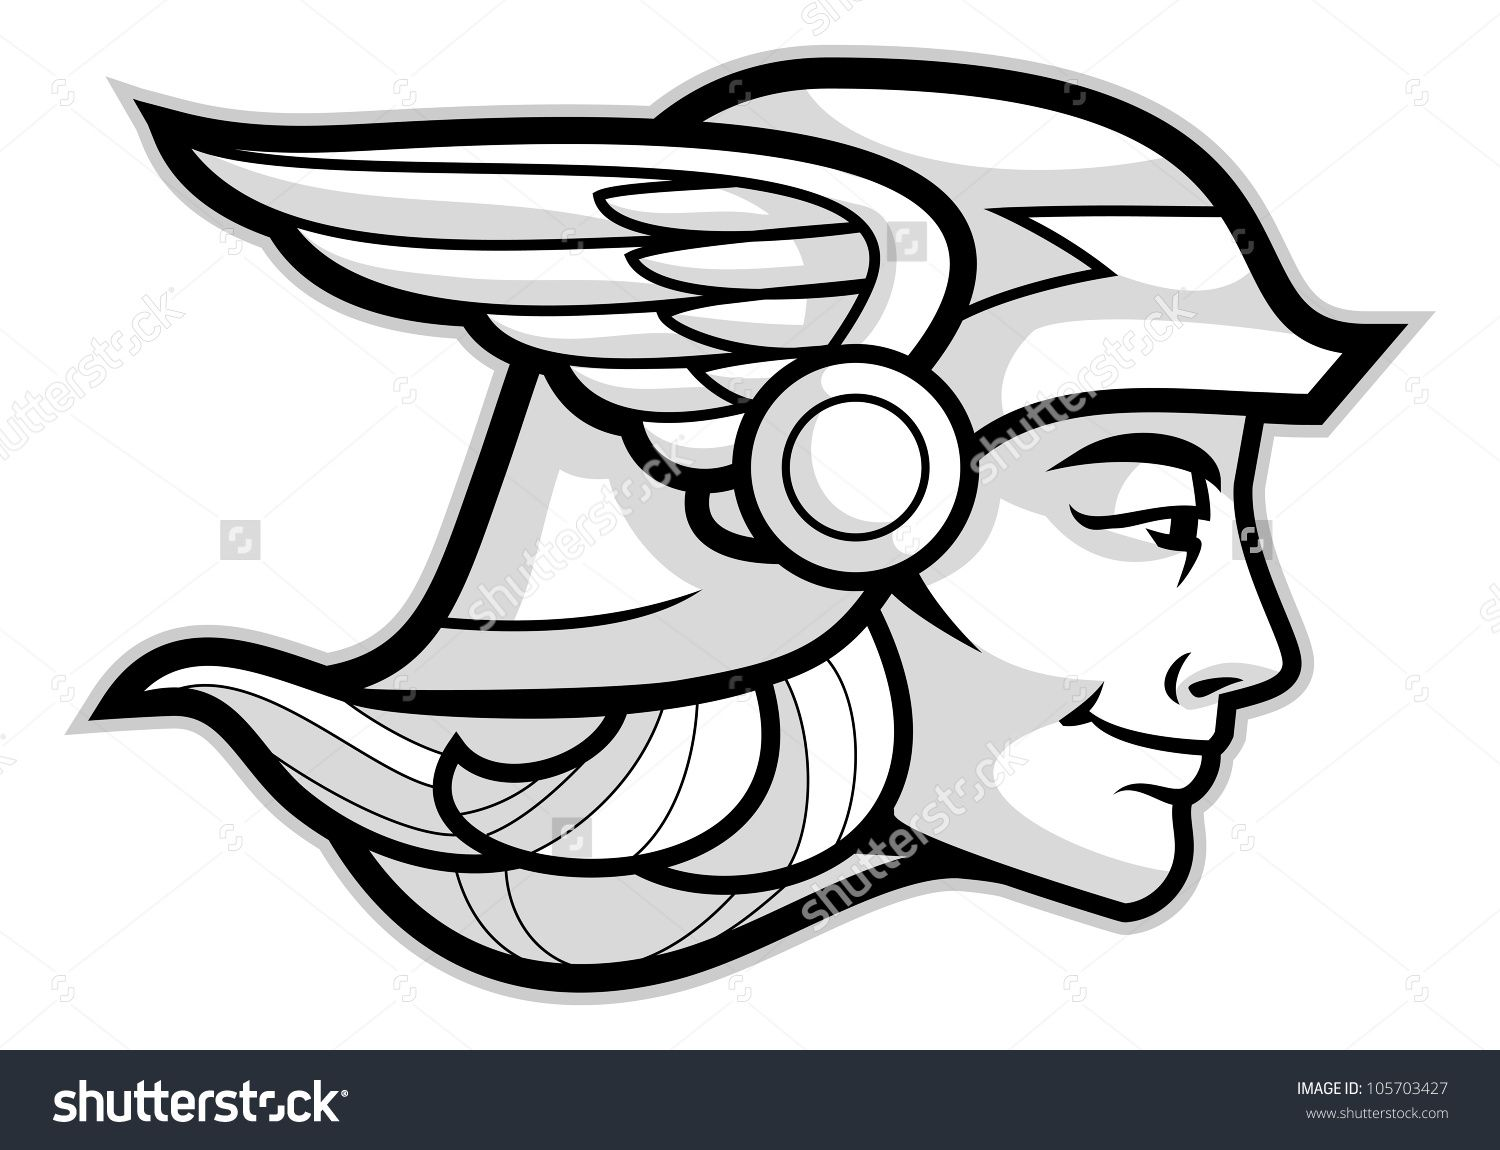 Head Of A Greek God Hermes Isolated On White Stock Vector ...